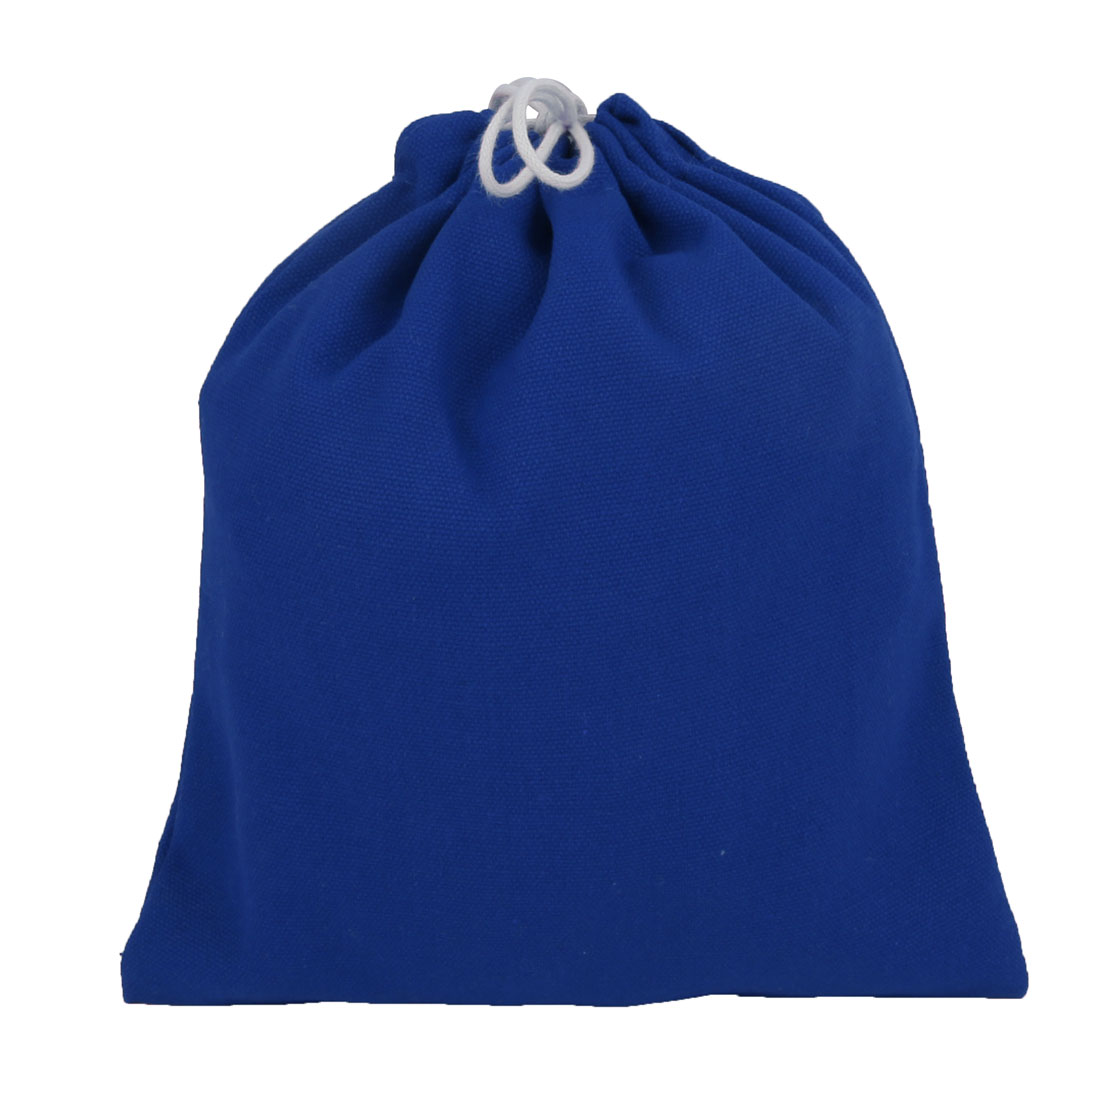 Home Travelling Canvas Drawstring Pouch Storage Packing Gift Toe Bag Royal Blue